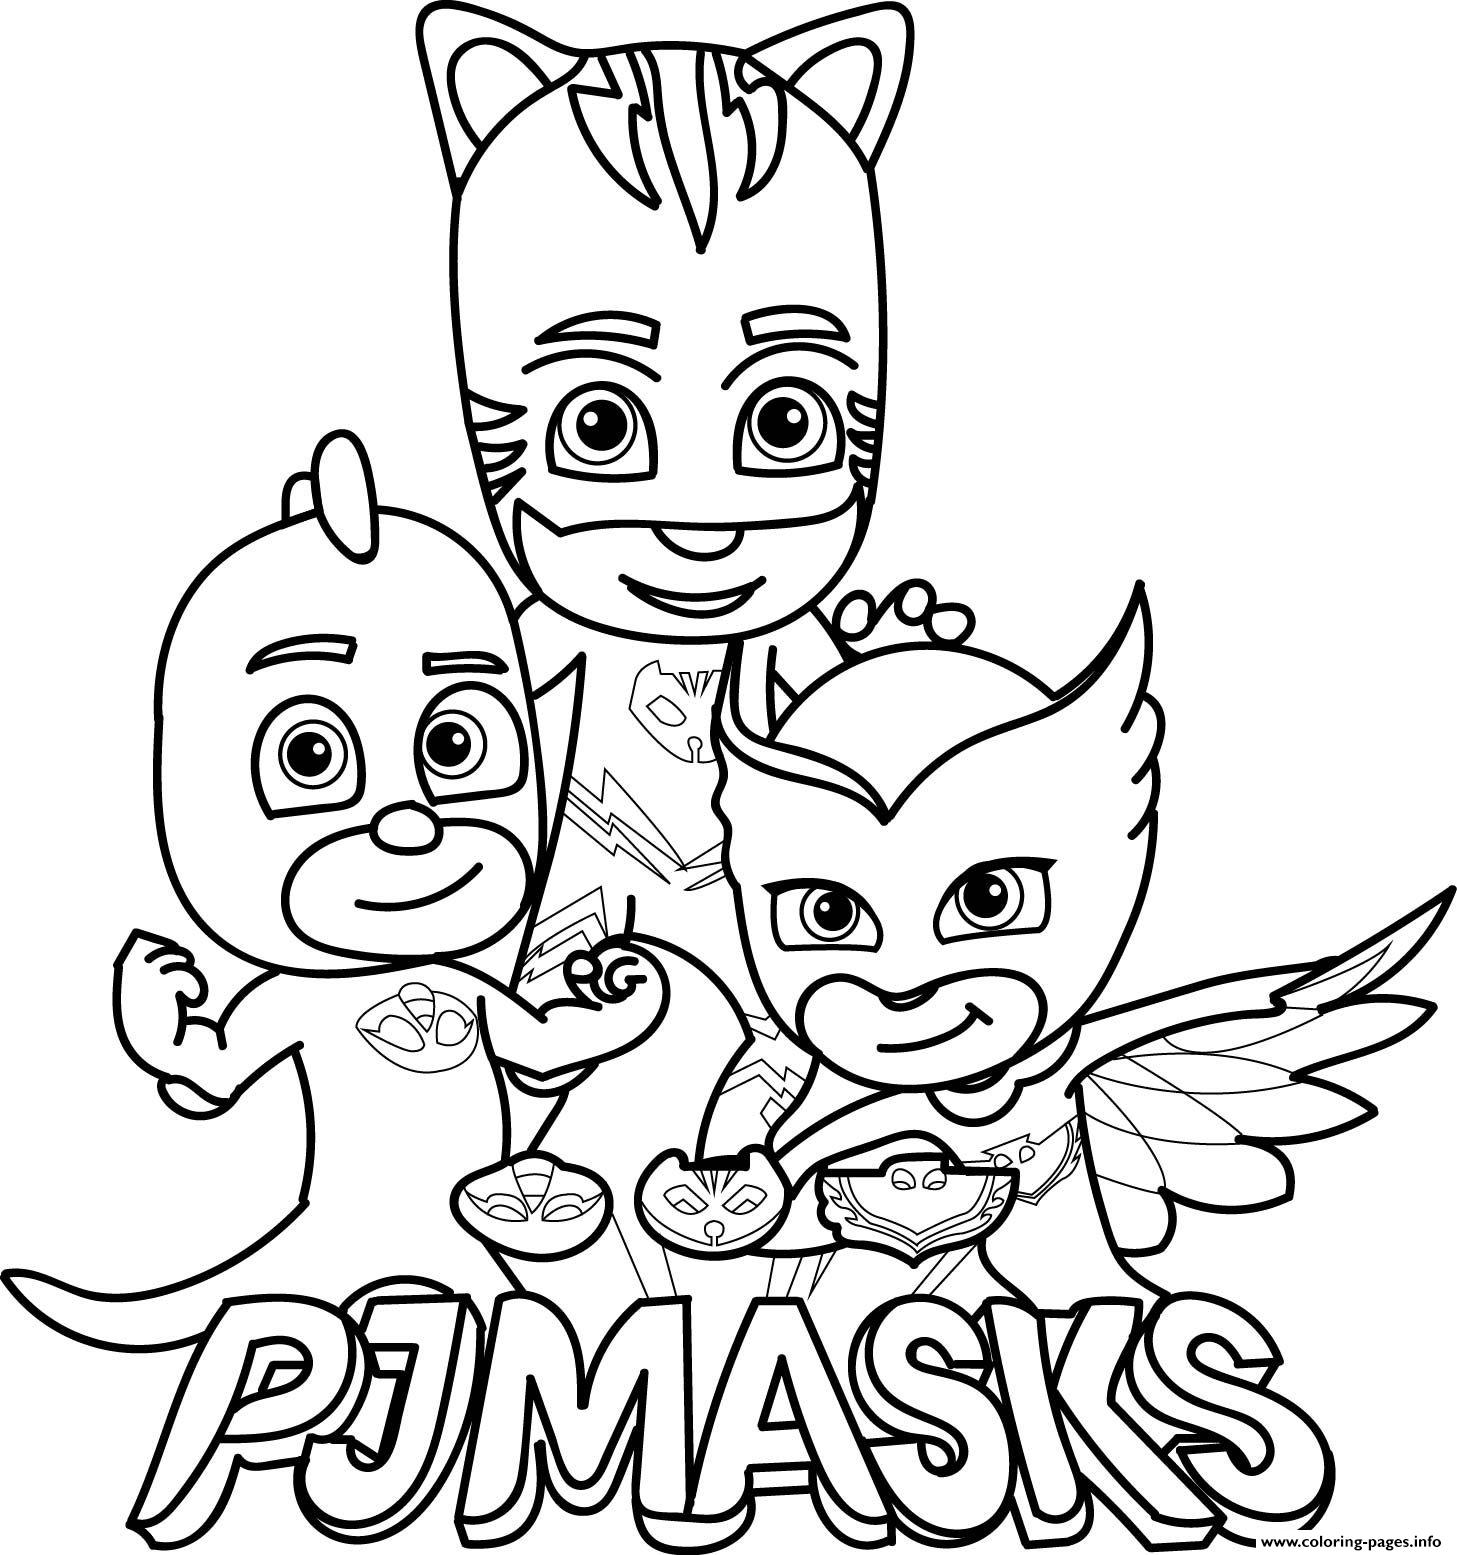 picture about Pj Mask Printable titled Pj Masks Gekko Owlette Catboy Brand Coloring Internet pages Printable